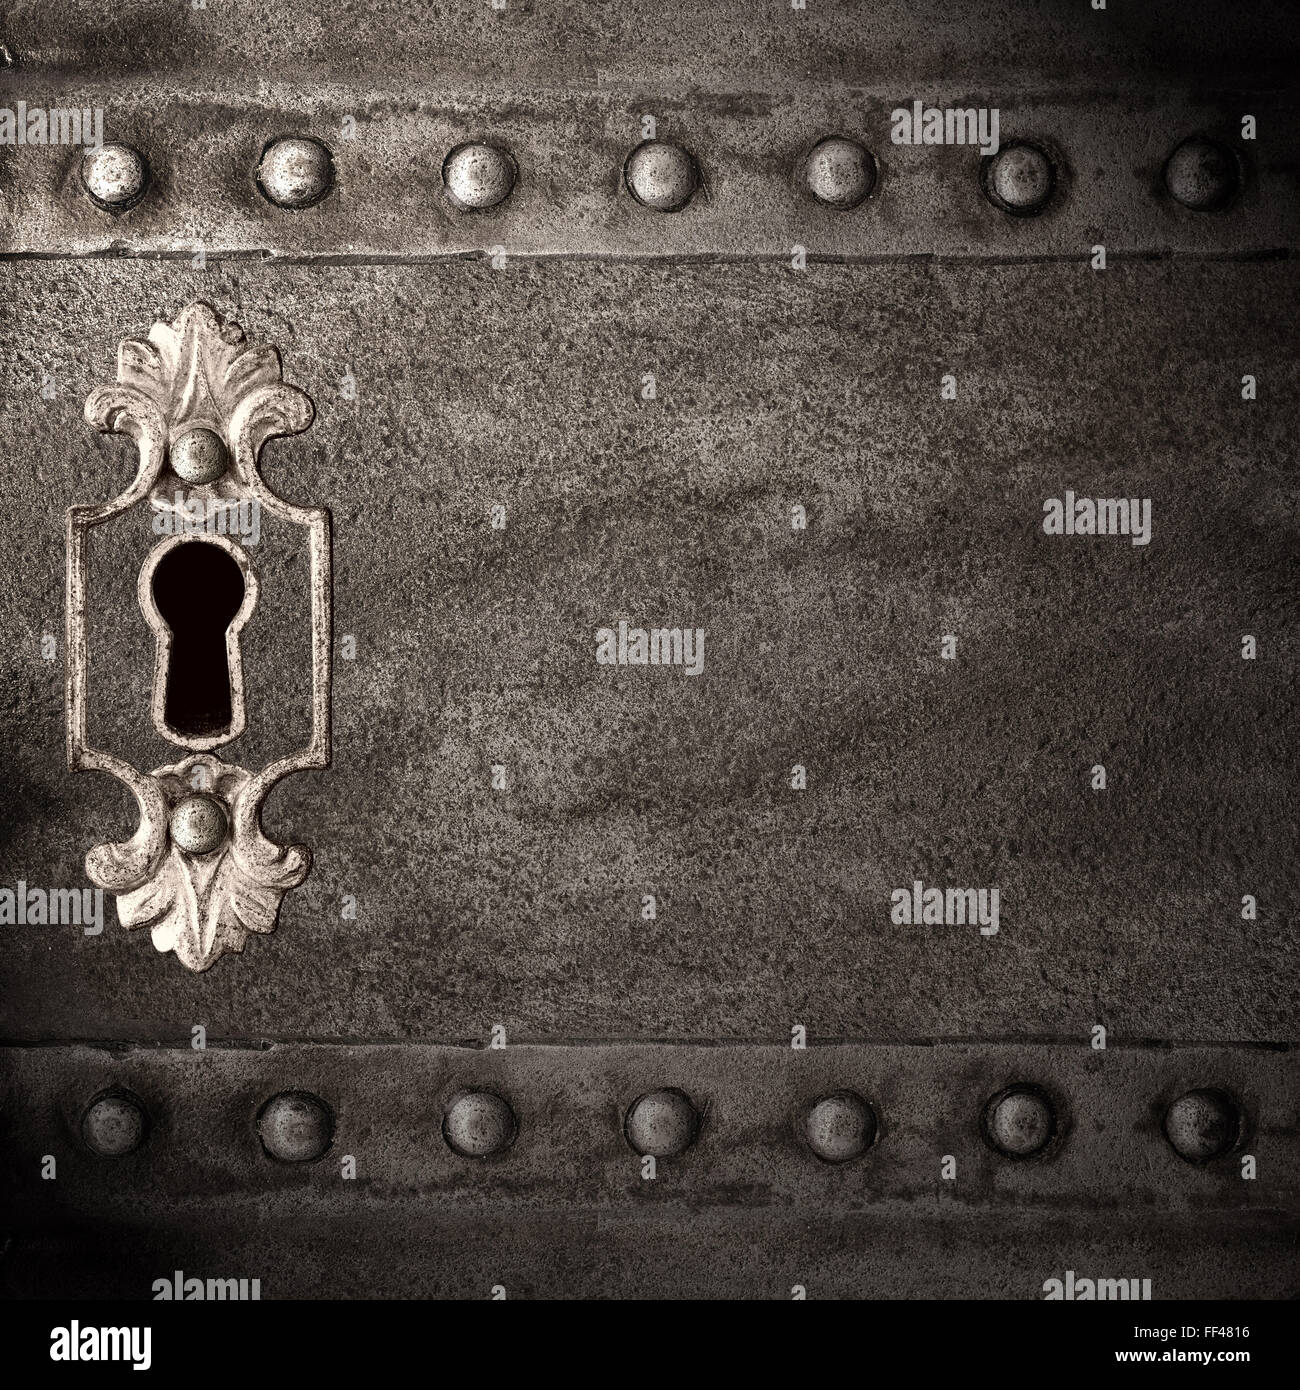 vintage keyhole in old iron doors, abstract background - Stock Image